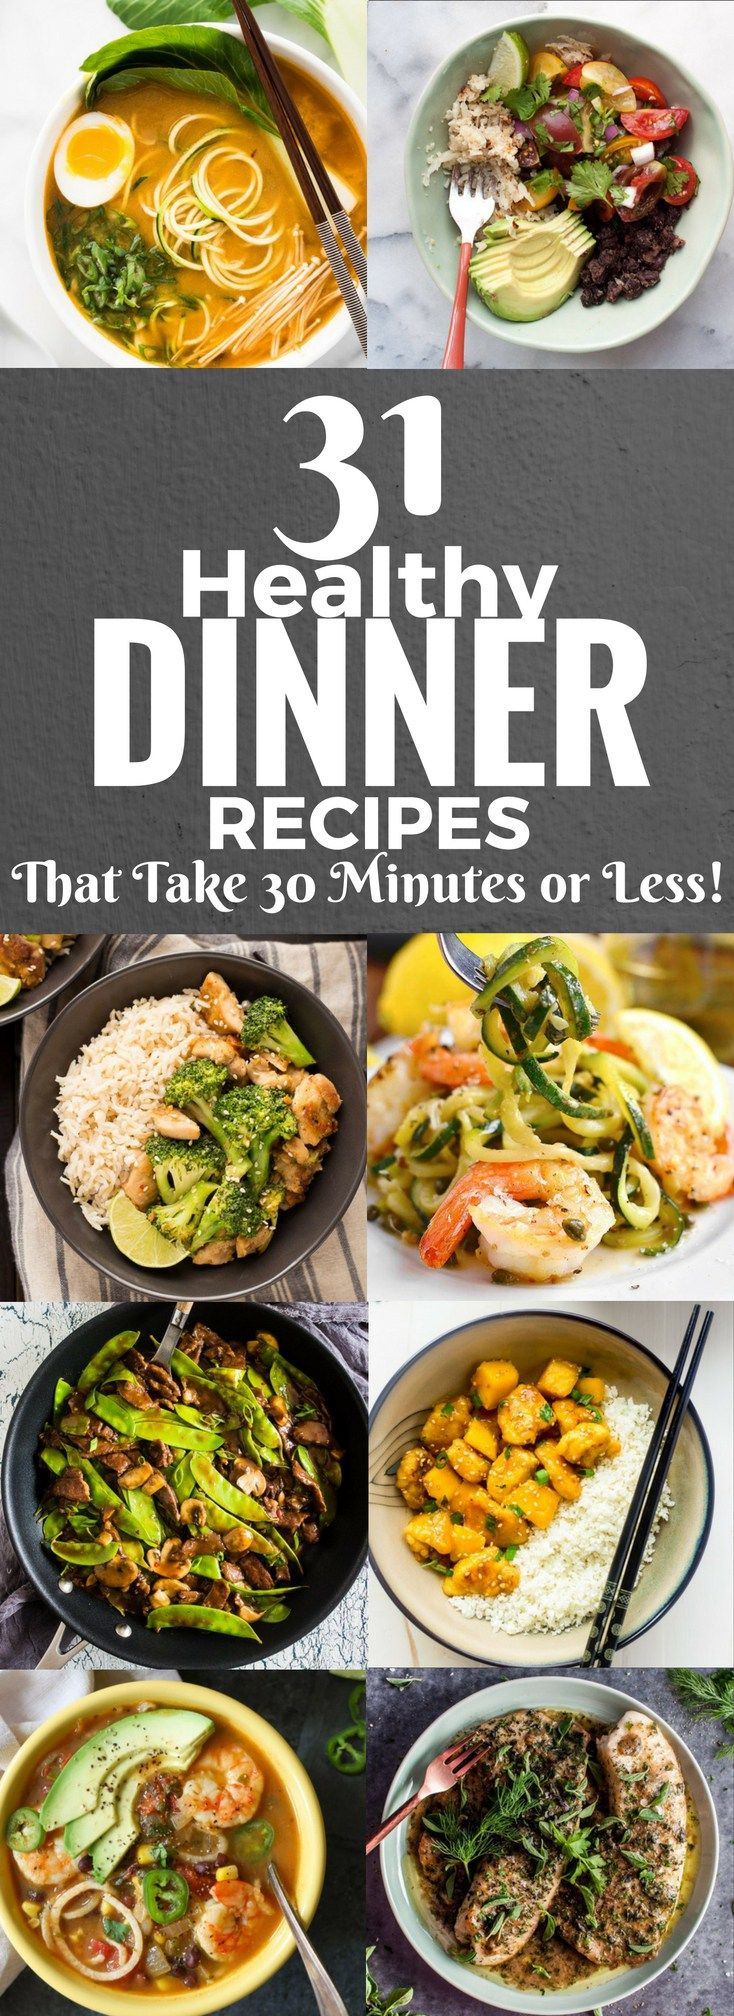 1291 best eating heathy in college images on pinterest healthy 31 healthy dinner recipes that take 30 minutes or less forumfinder Gallery